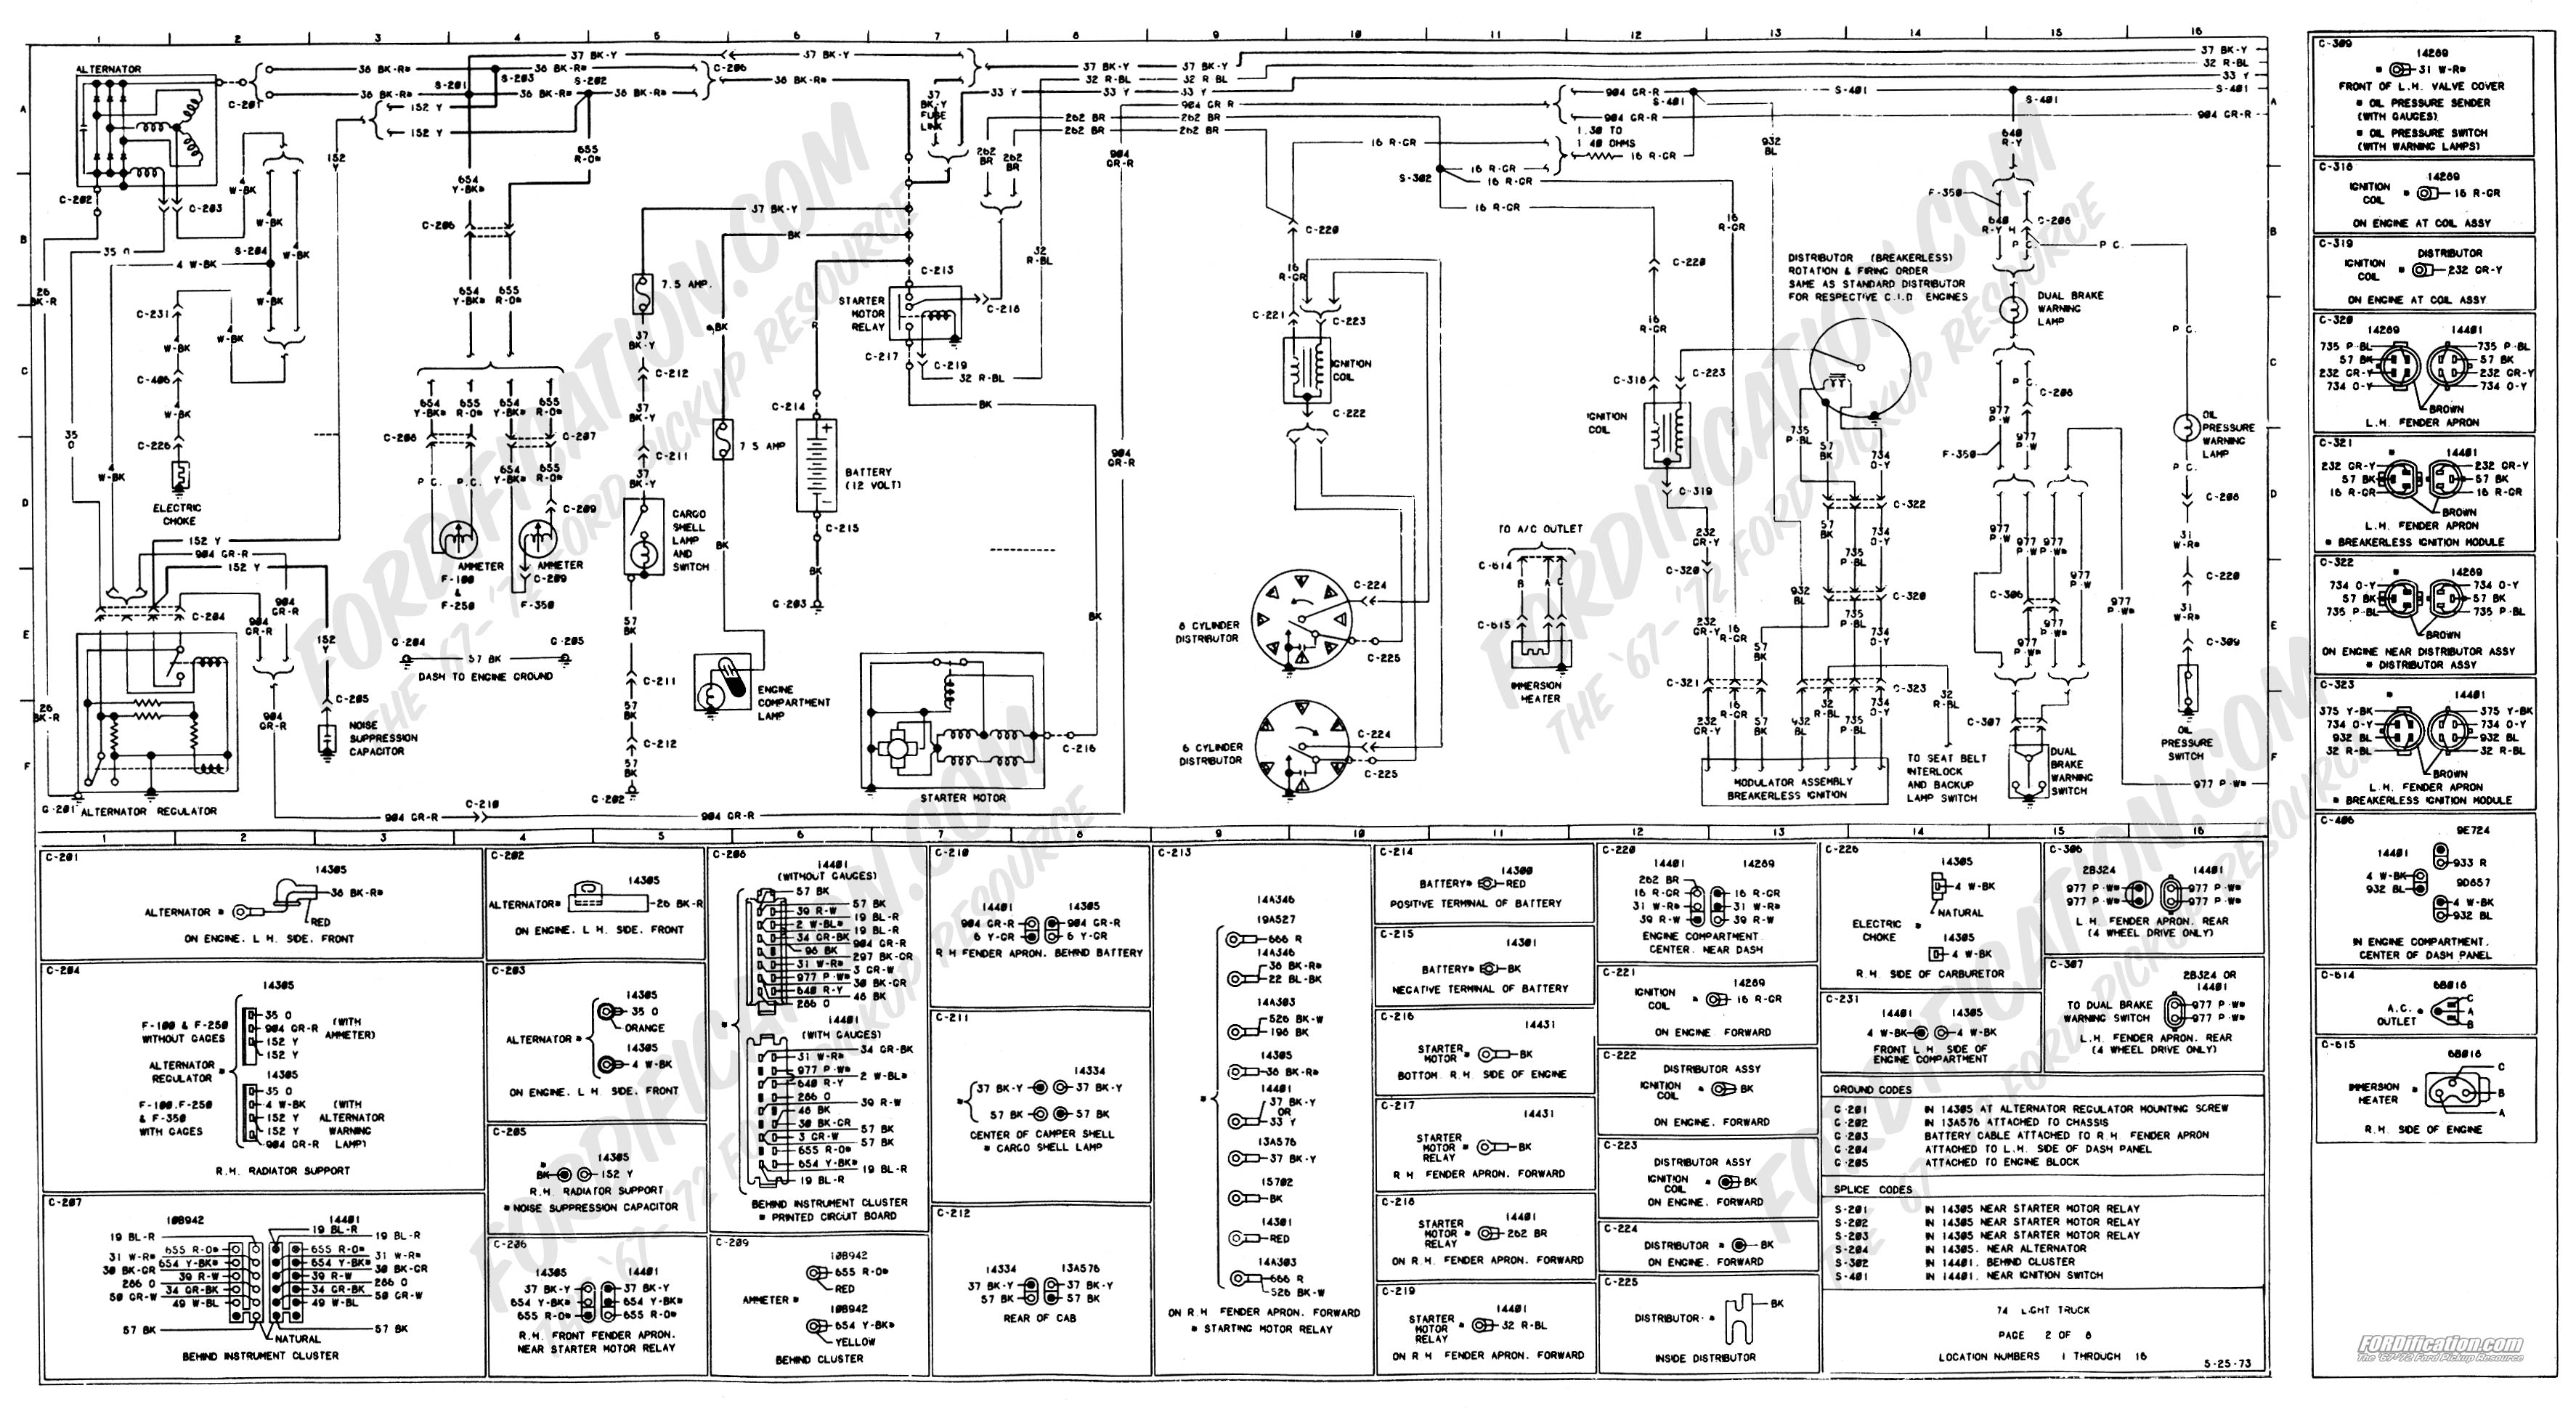 1979 Ford F 250 Wiring Diagram Diagrams Option 1983 150 Ignition 1973 Truck Schematics Fordification Net 1988